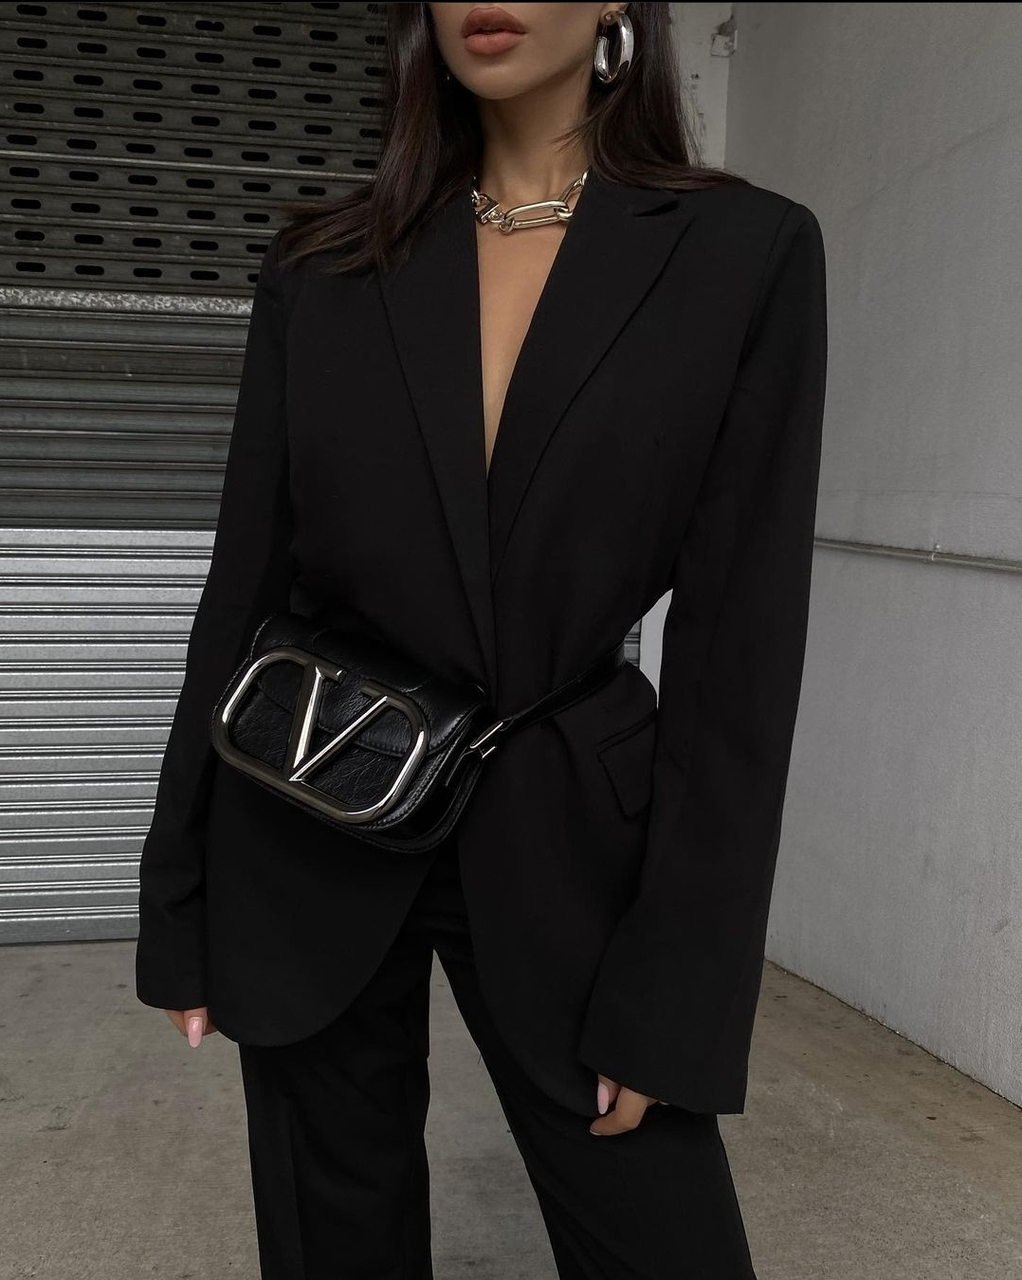 fashion, aesthetic, and look image